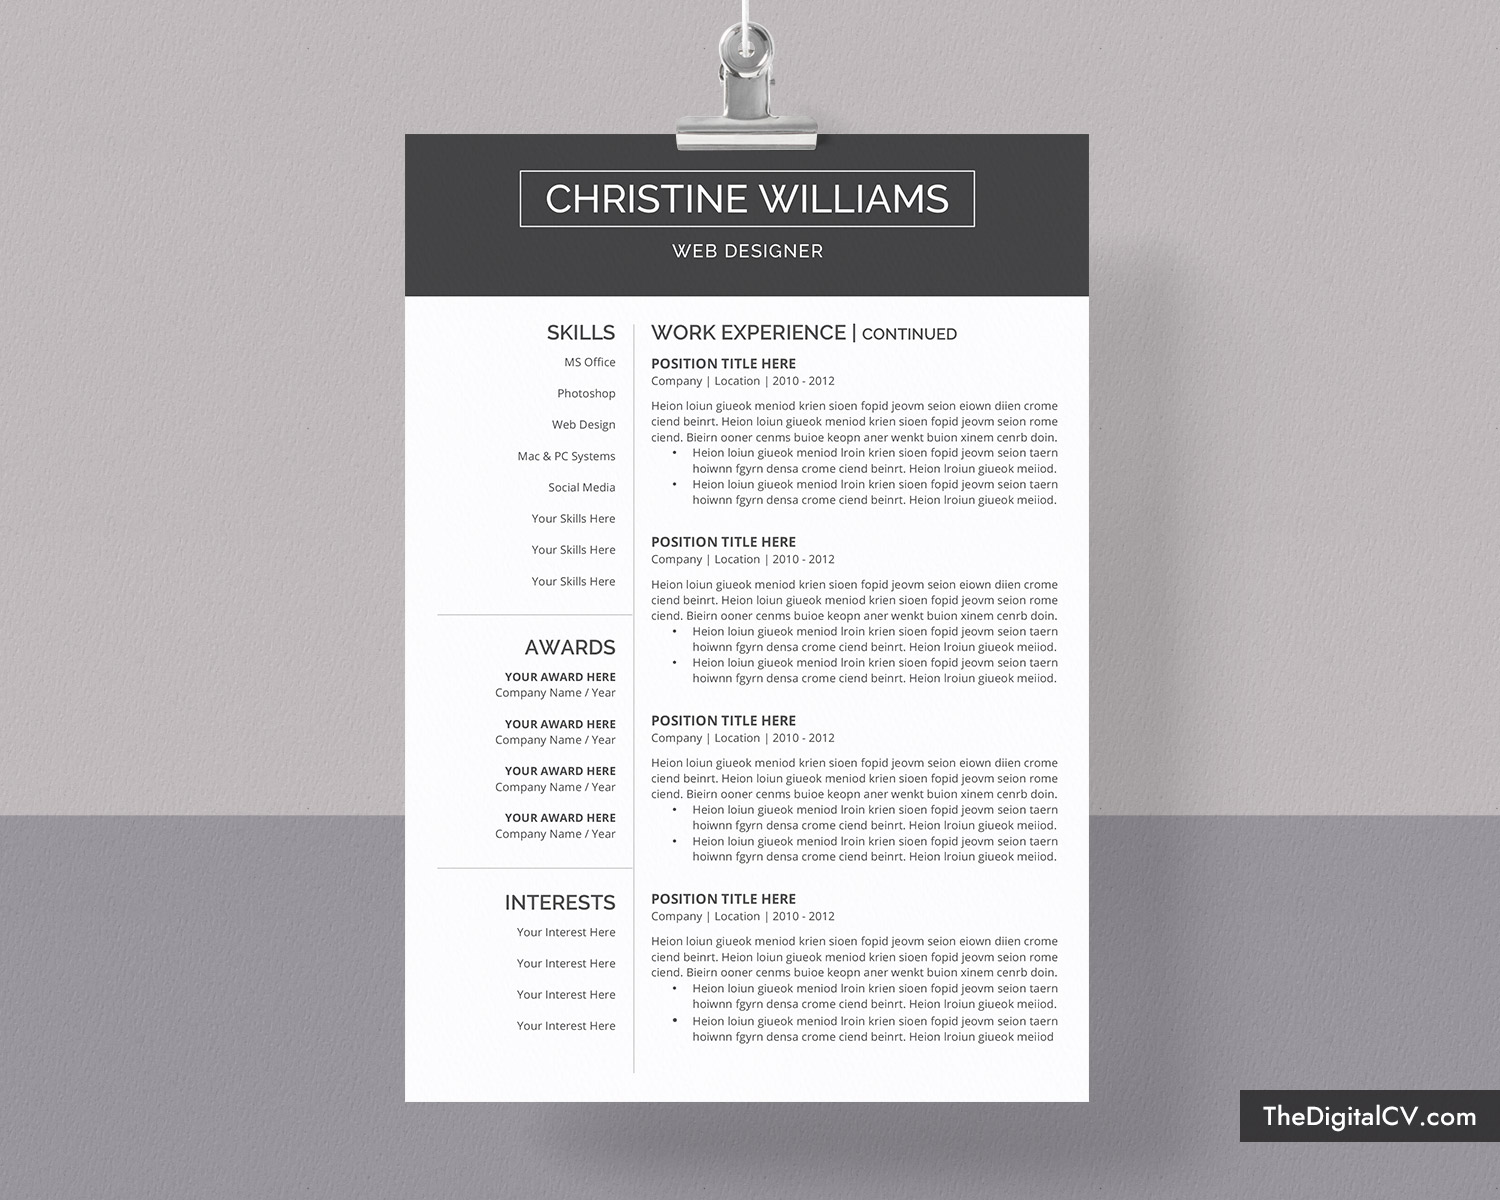 Simple and Basic Resume Template 2019-2020, CV Template, Cover Letter,  Microsoft Word Resume Template, 1-3 Page, Modern Resume, Creative Resume,  ...